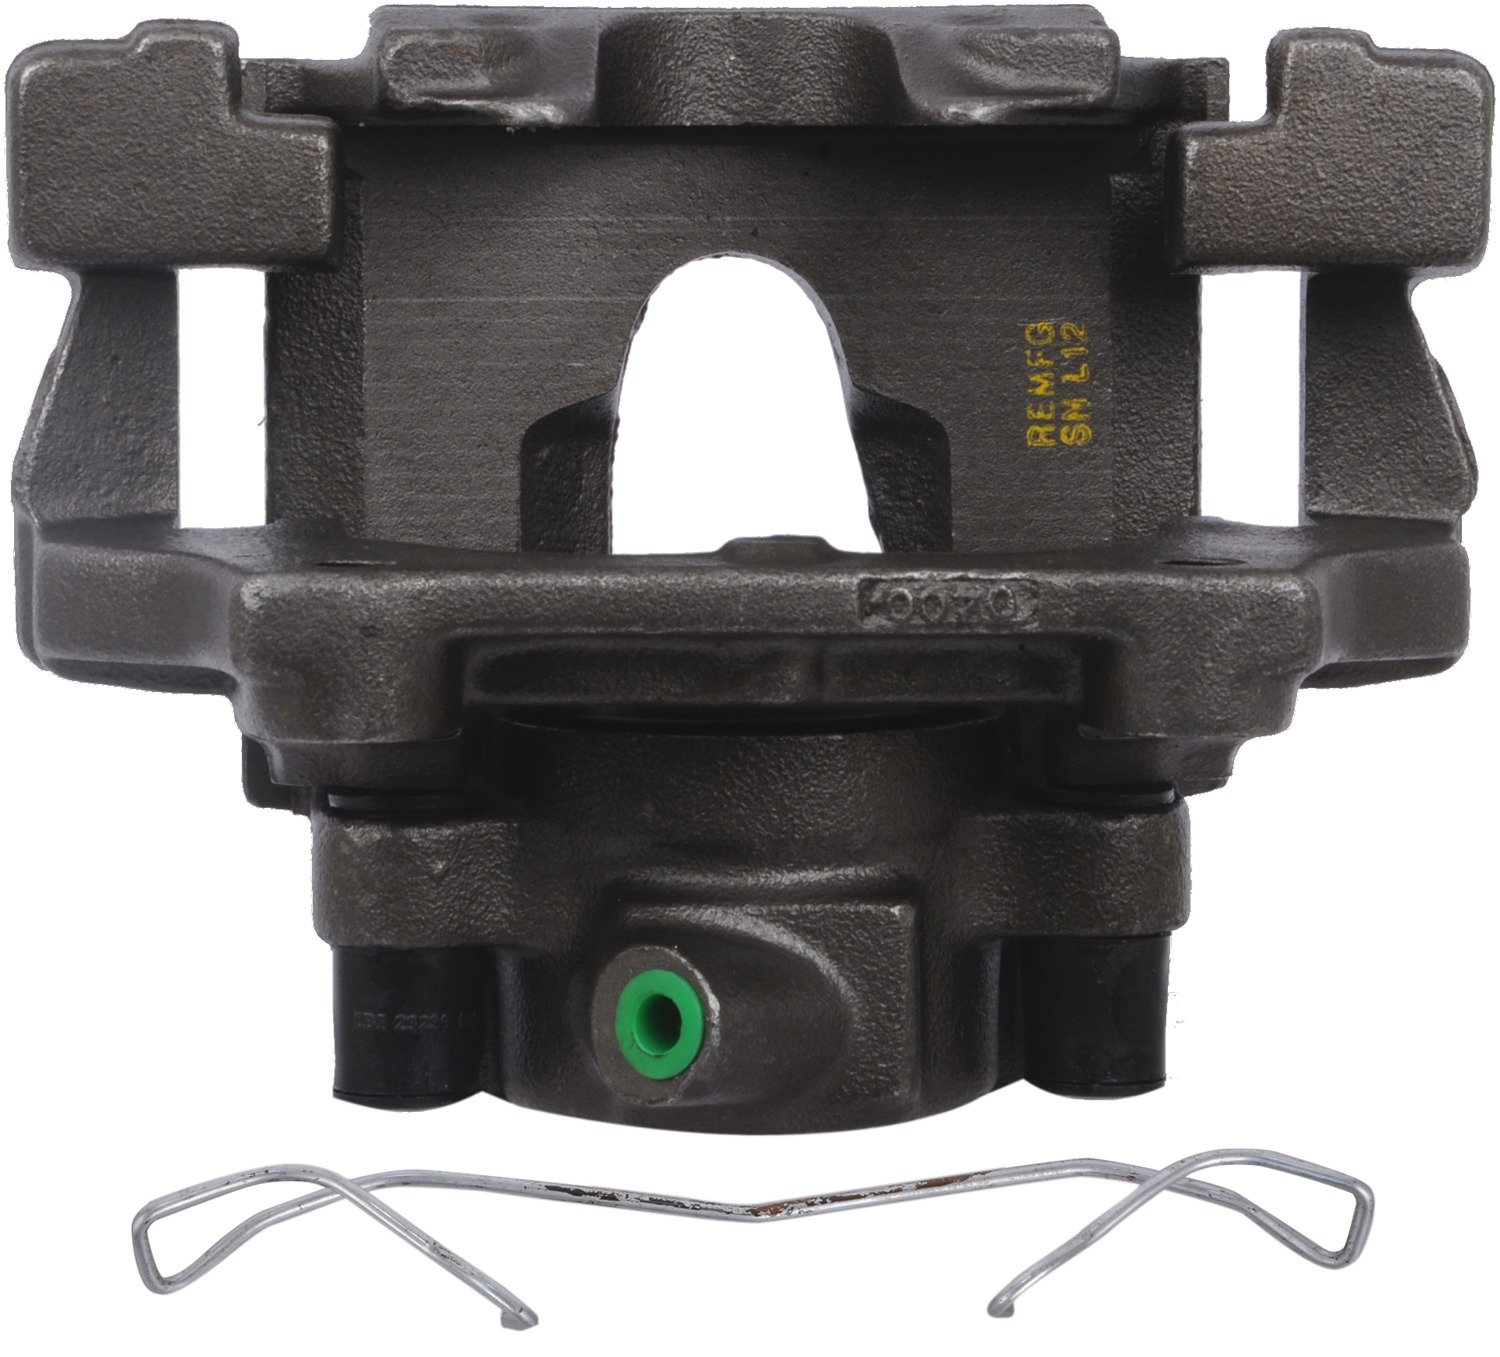 Brake Caliper A1 Cardone Cardone 19-B1821 Remanufactured Import Friction Ready Unloaded